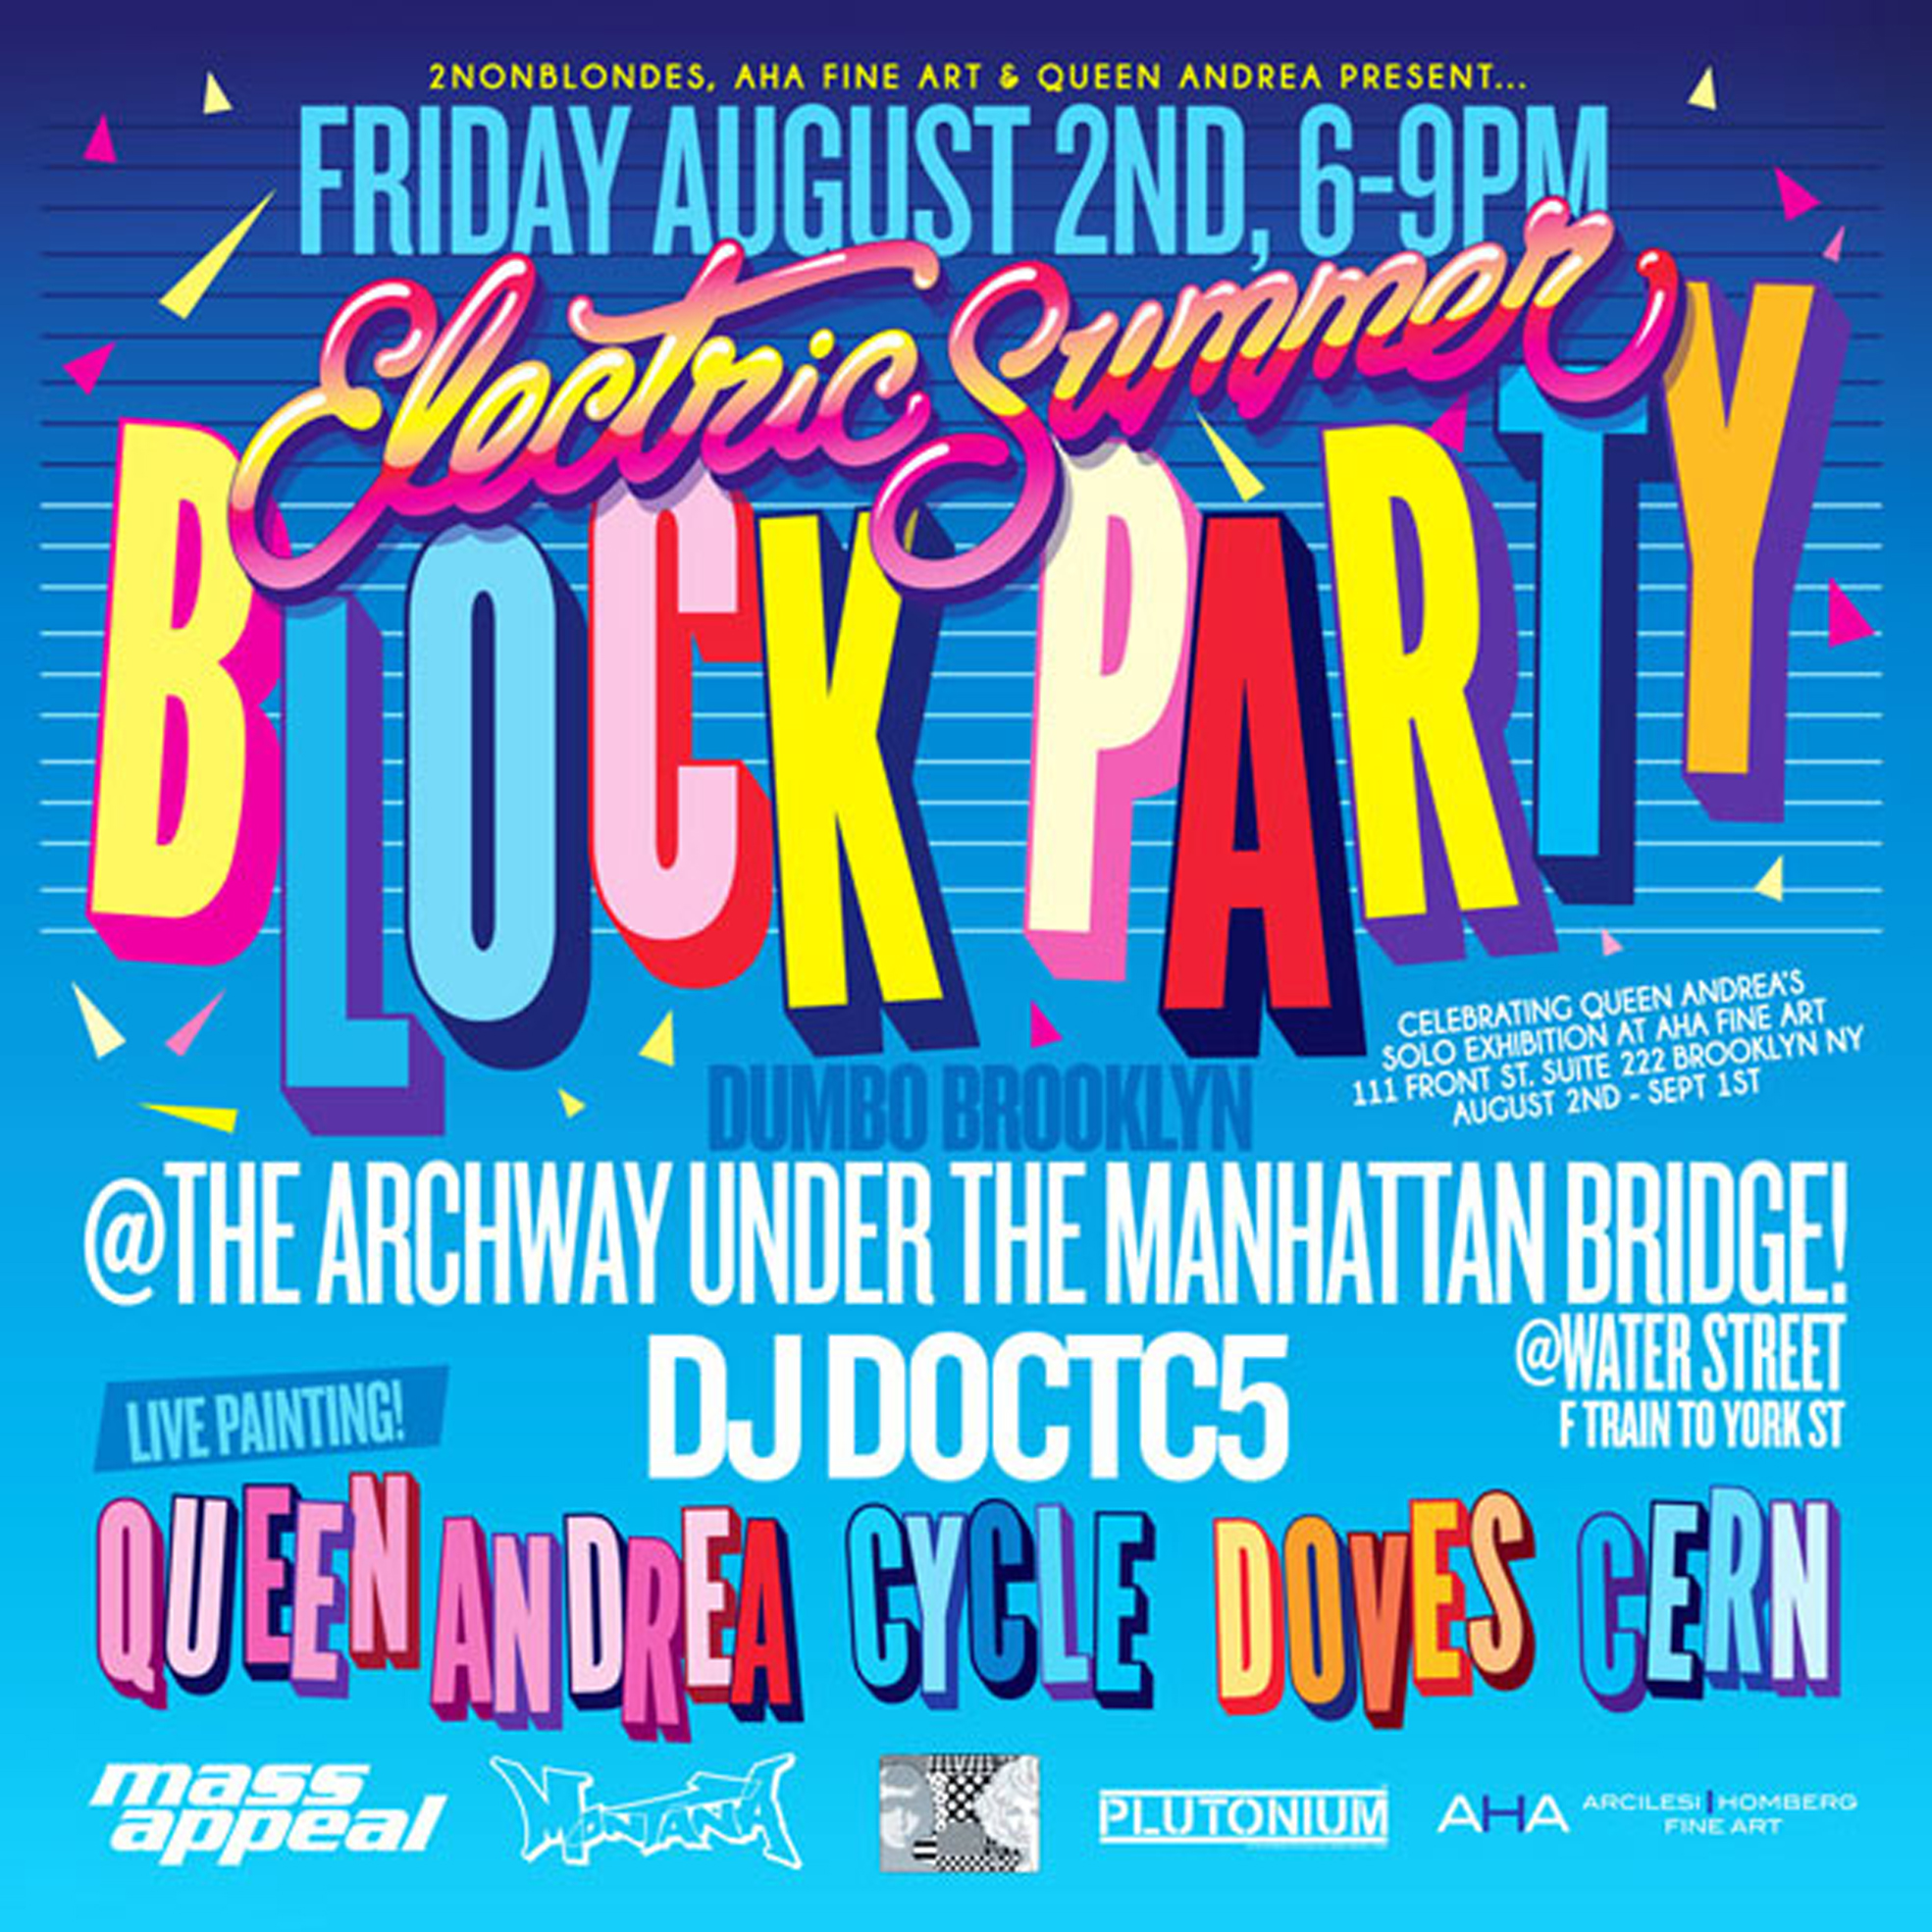 qa4ElectricSummerBlockParty.jpg